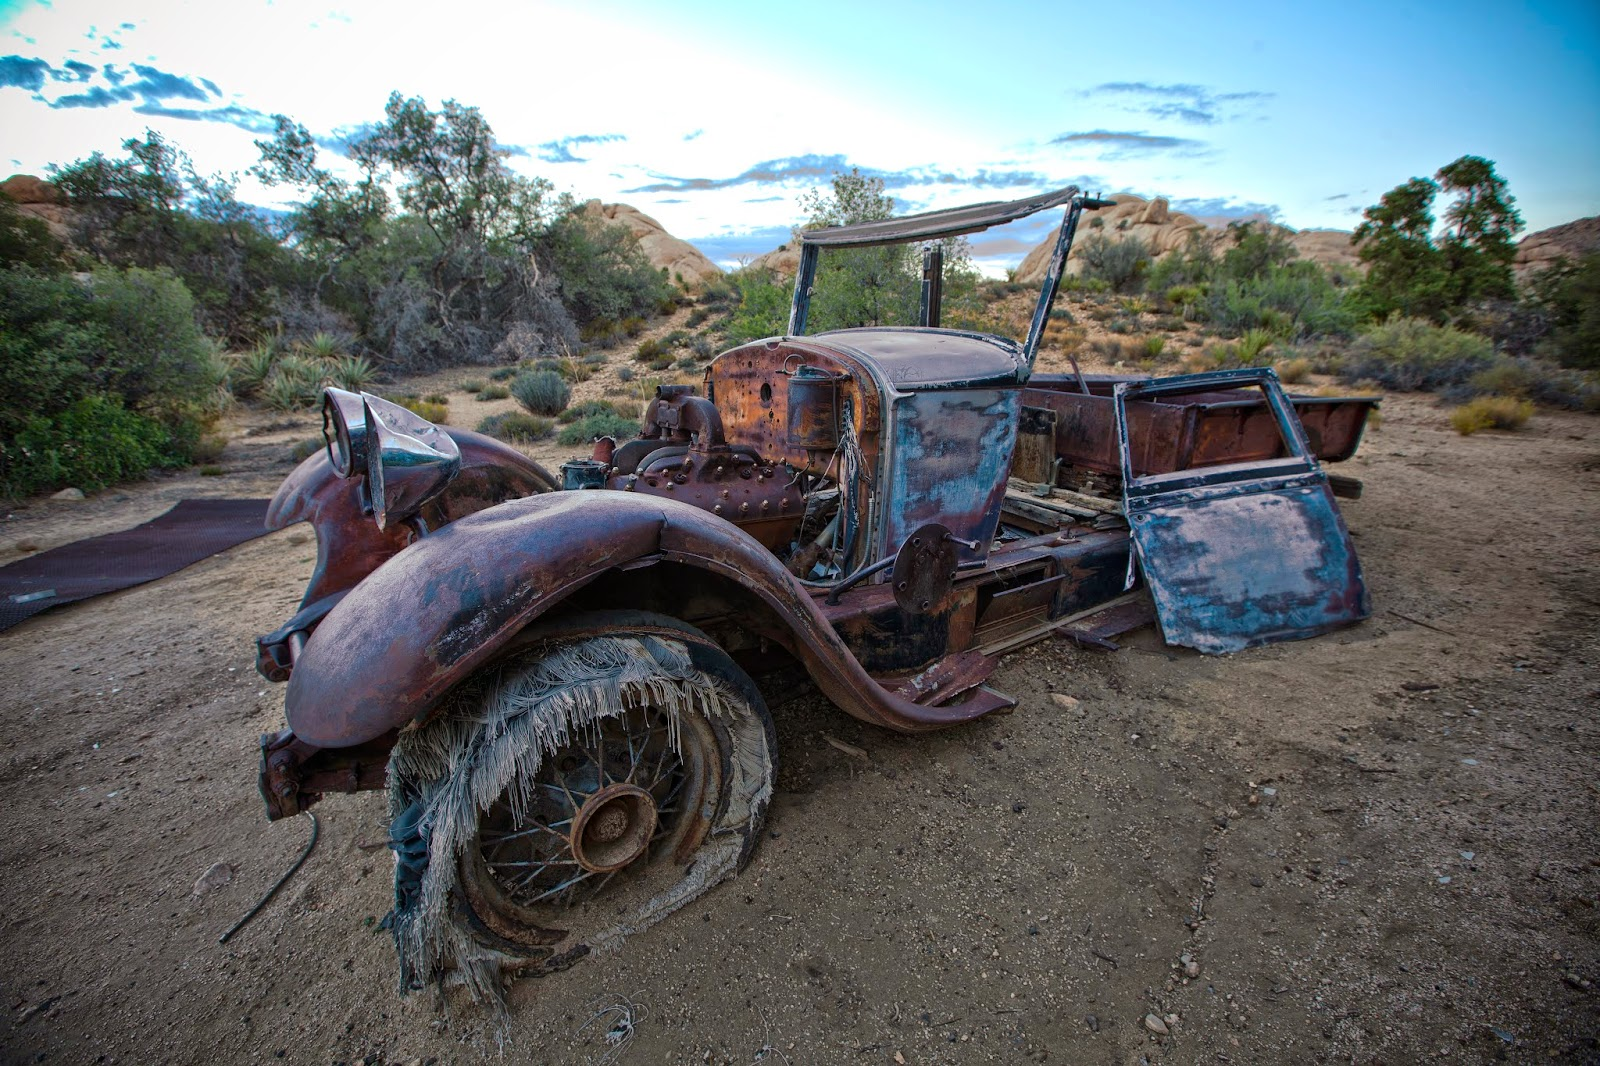 Spare Parts and Pics: Old Cars of Joshua Tree National Park